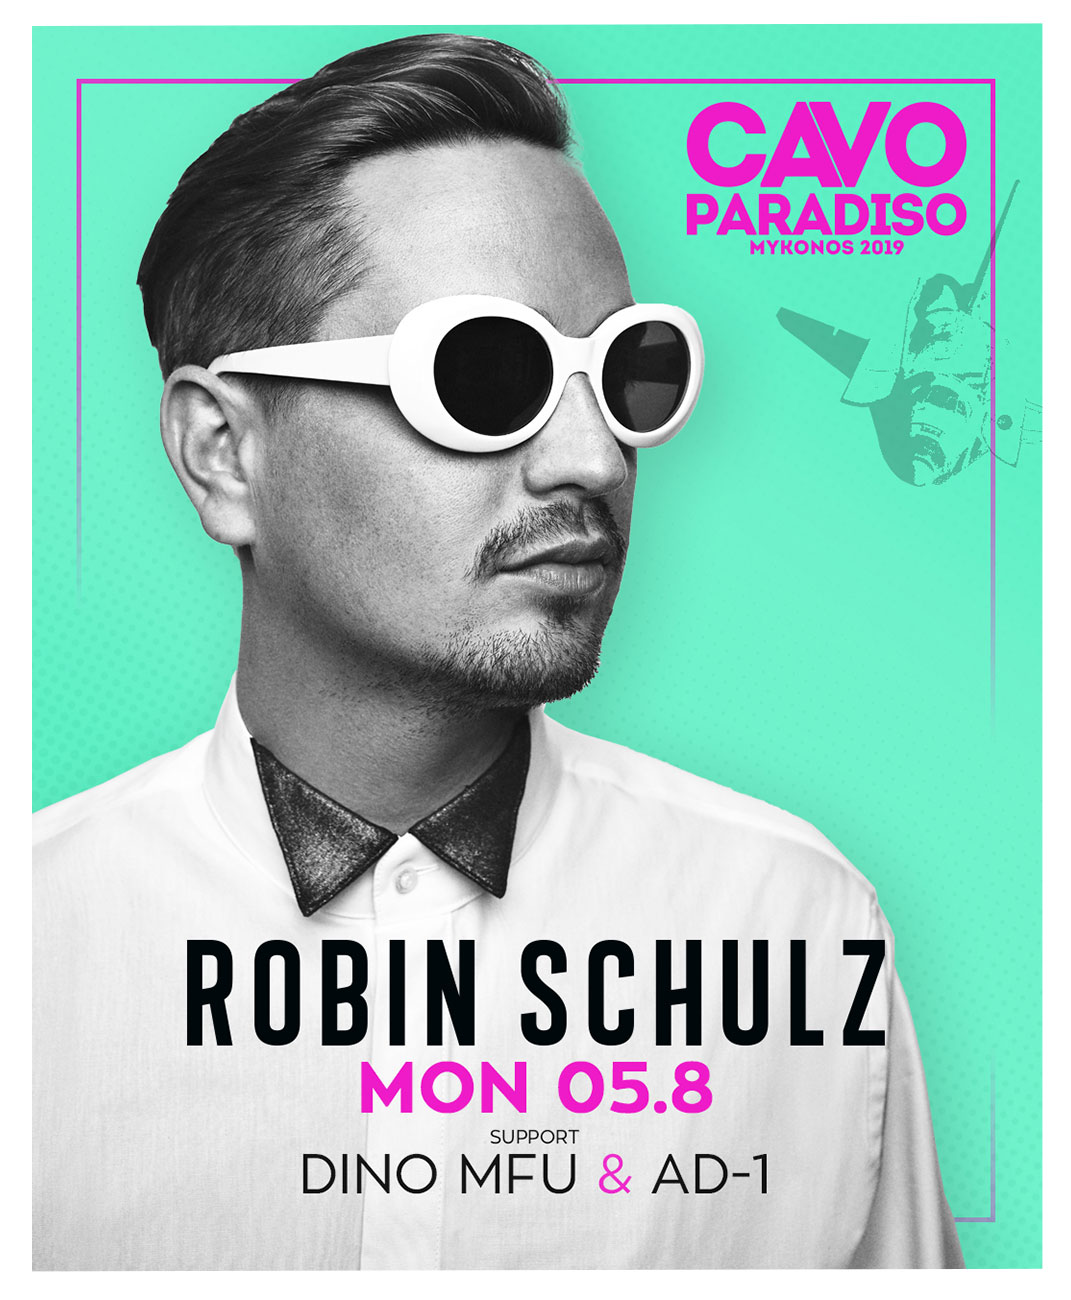 Robin Schulz w/ support by Dino MFU